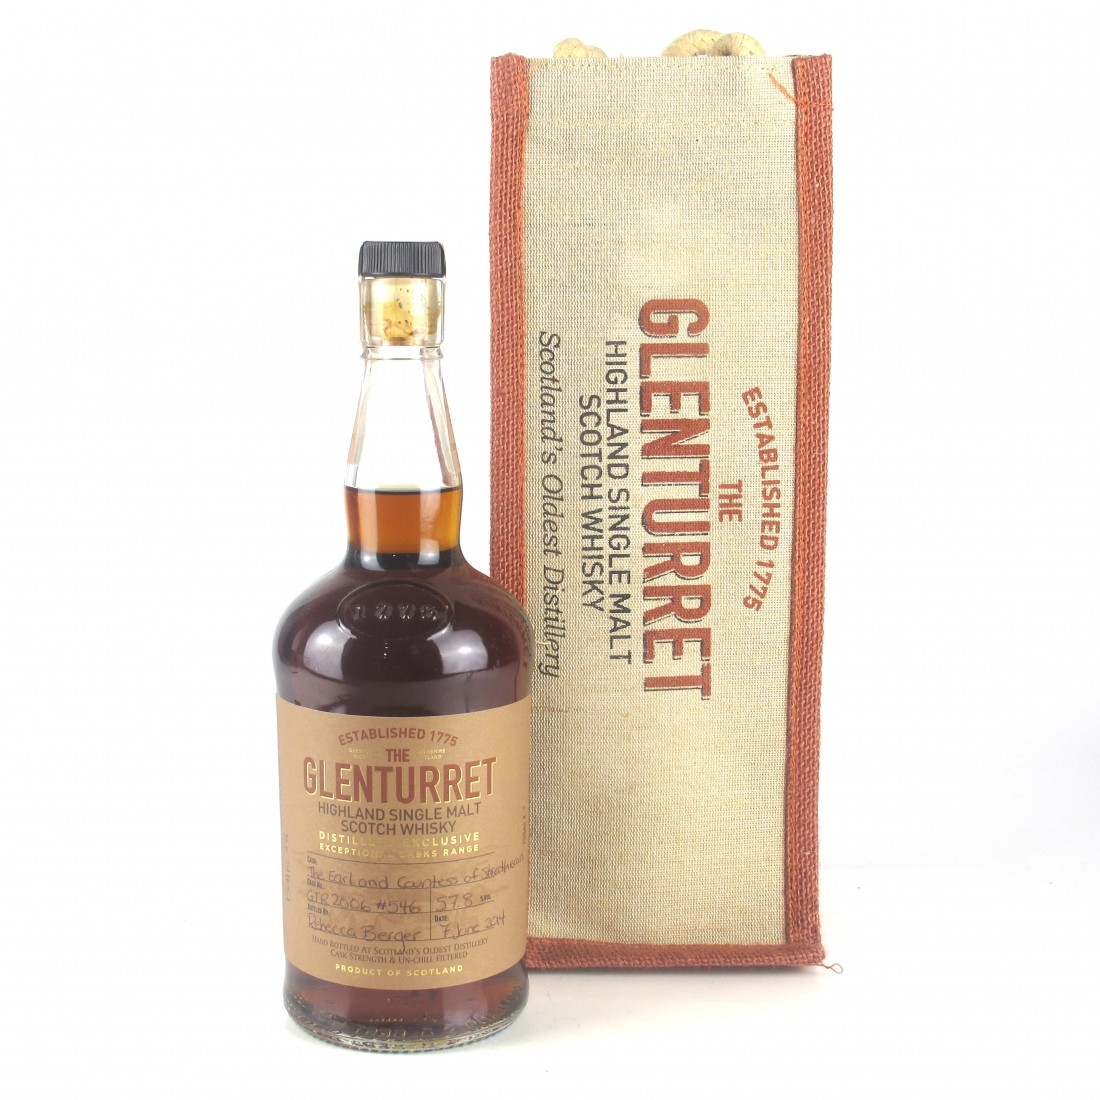 Glenturret 2006 Earl and Countess of Strathearn / Distillery Exclusive